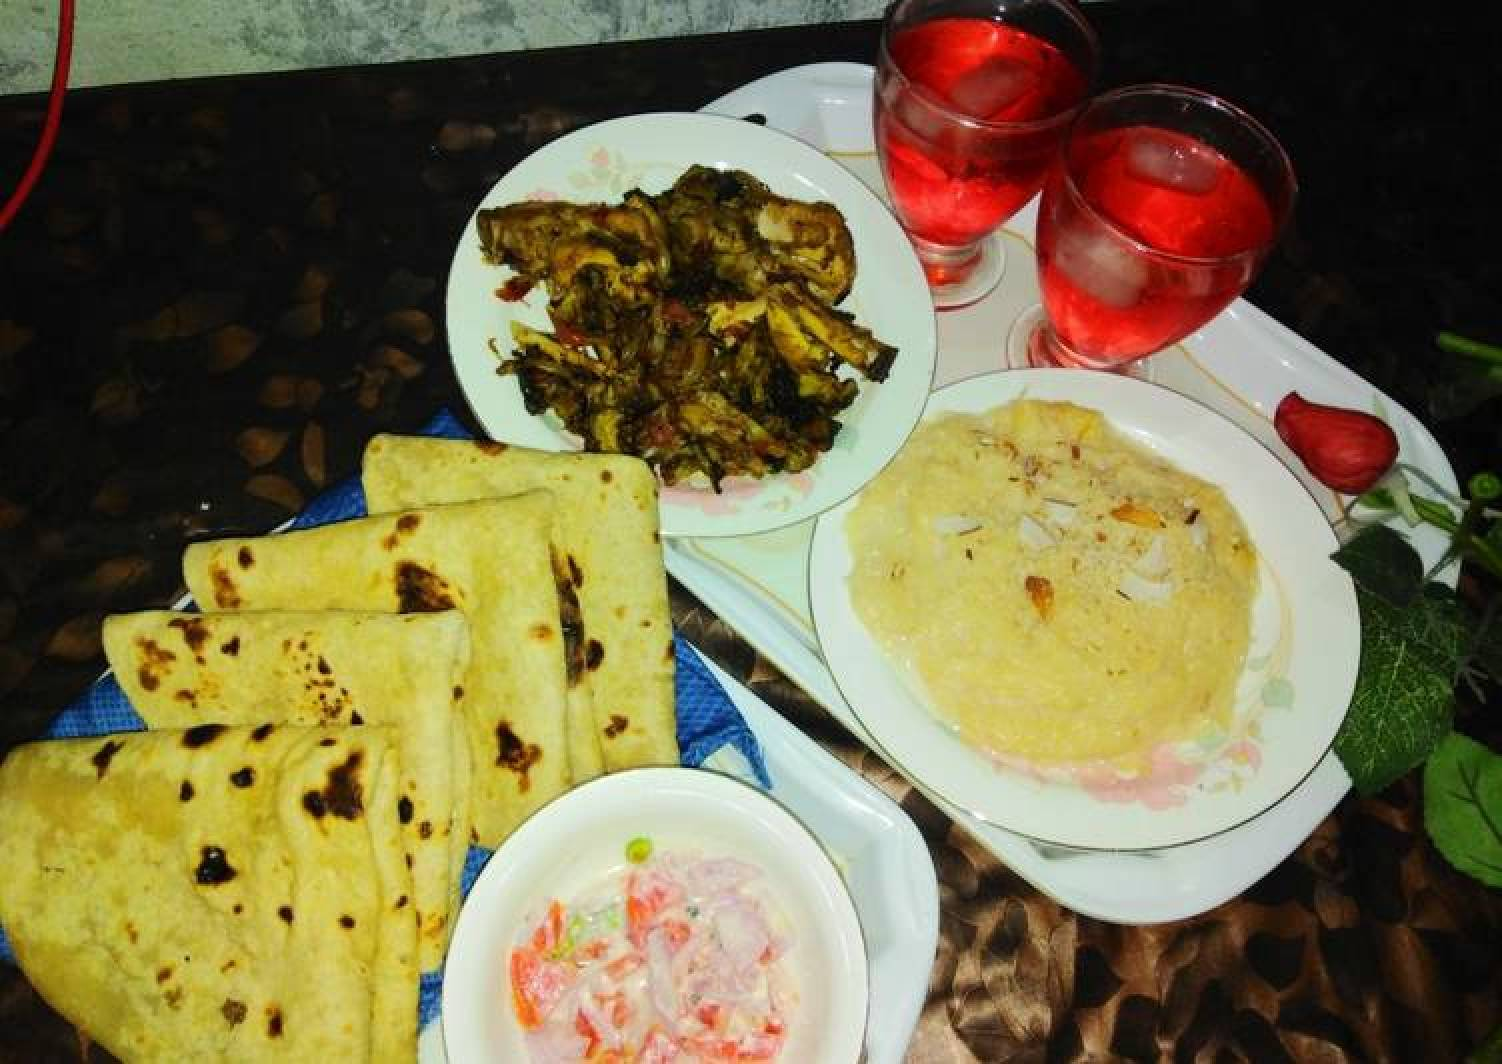 Chicken karaily and sheer khurma with rooti salad and drink